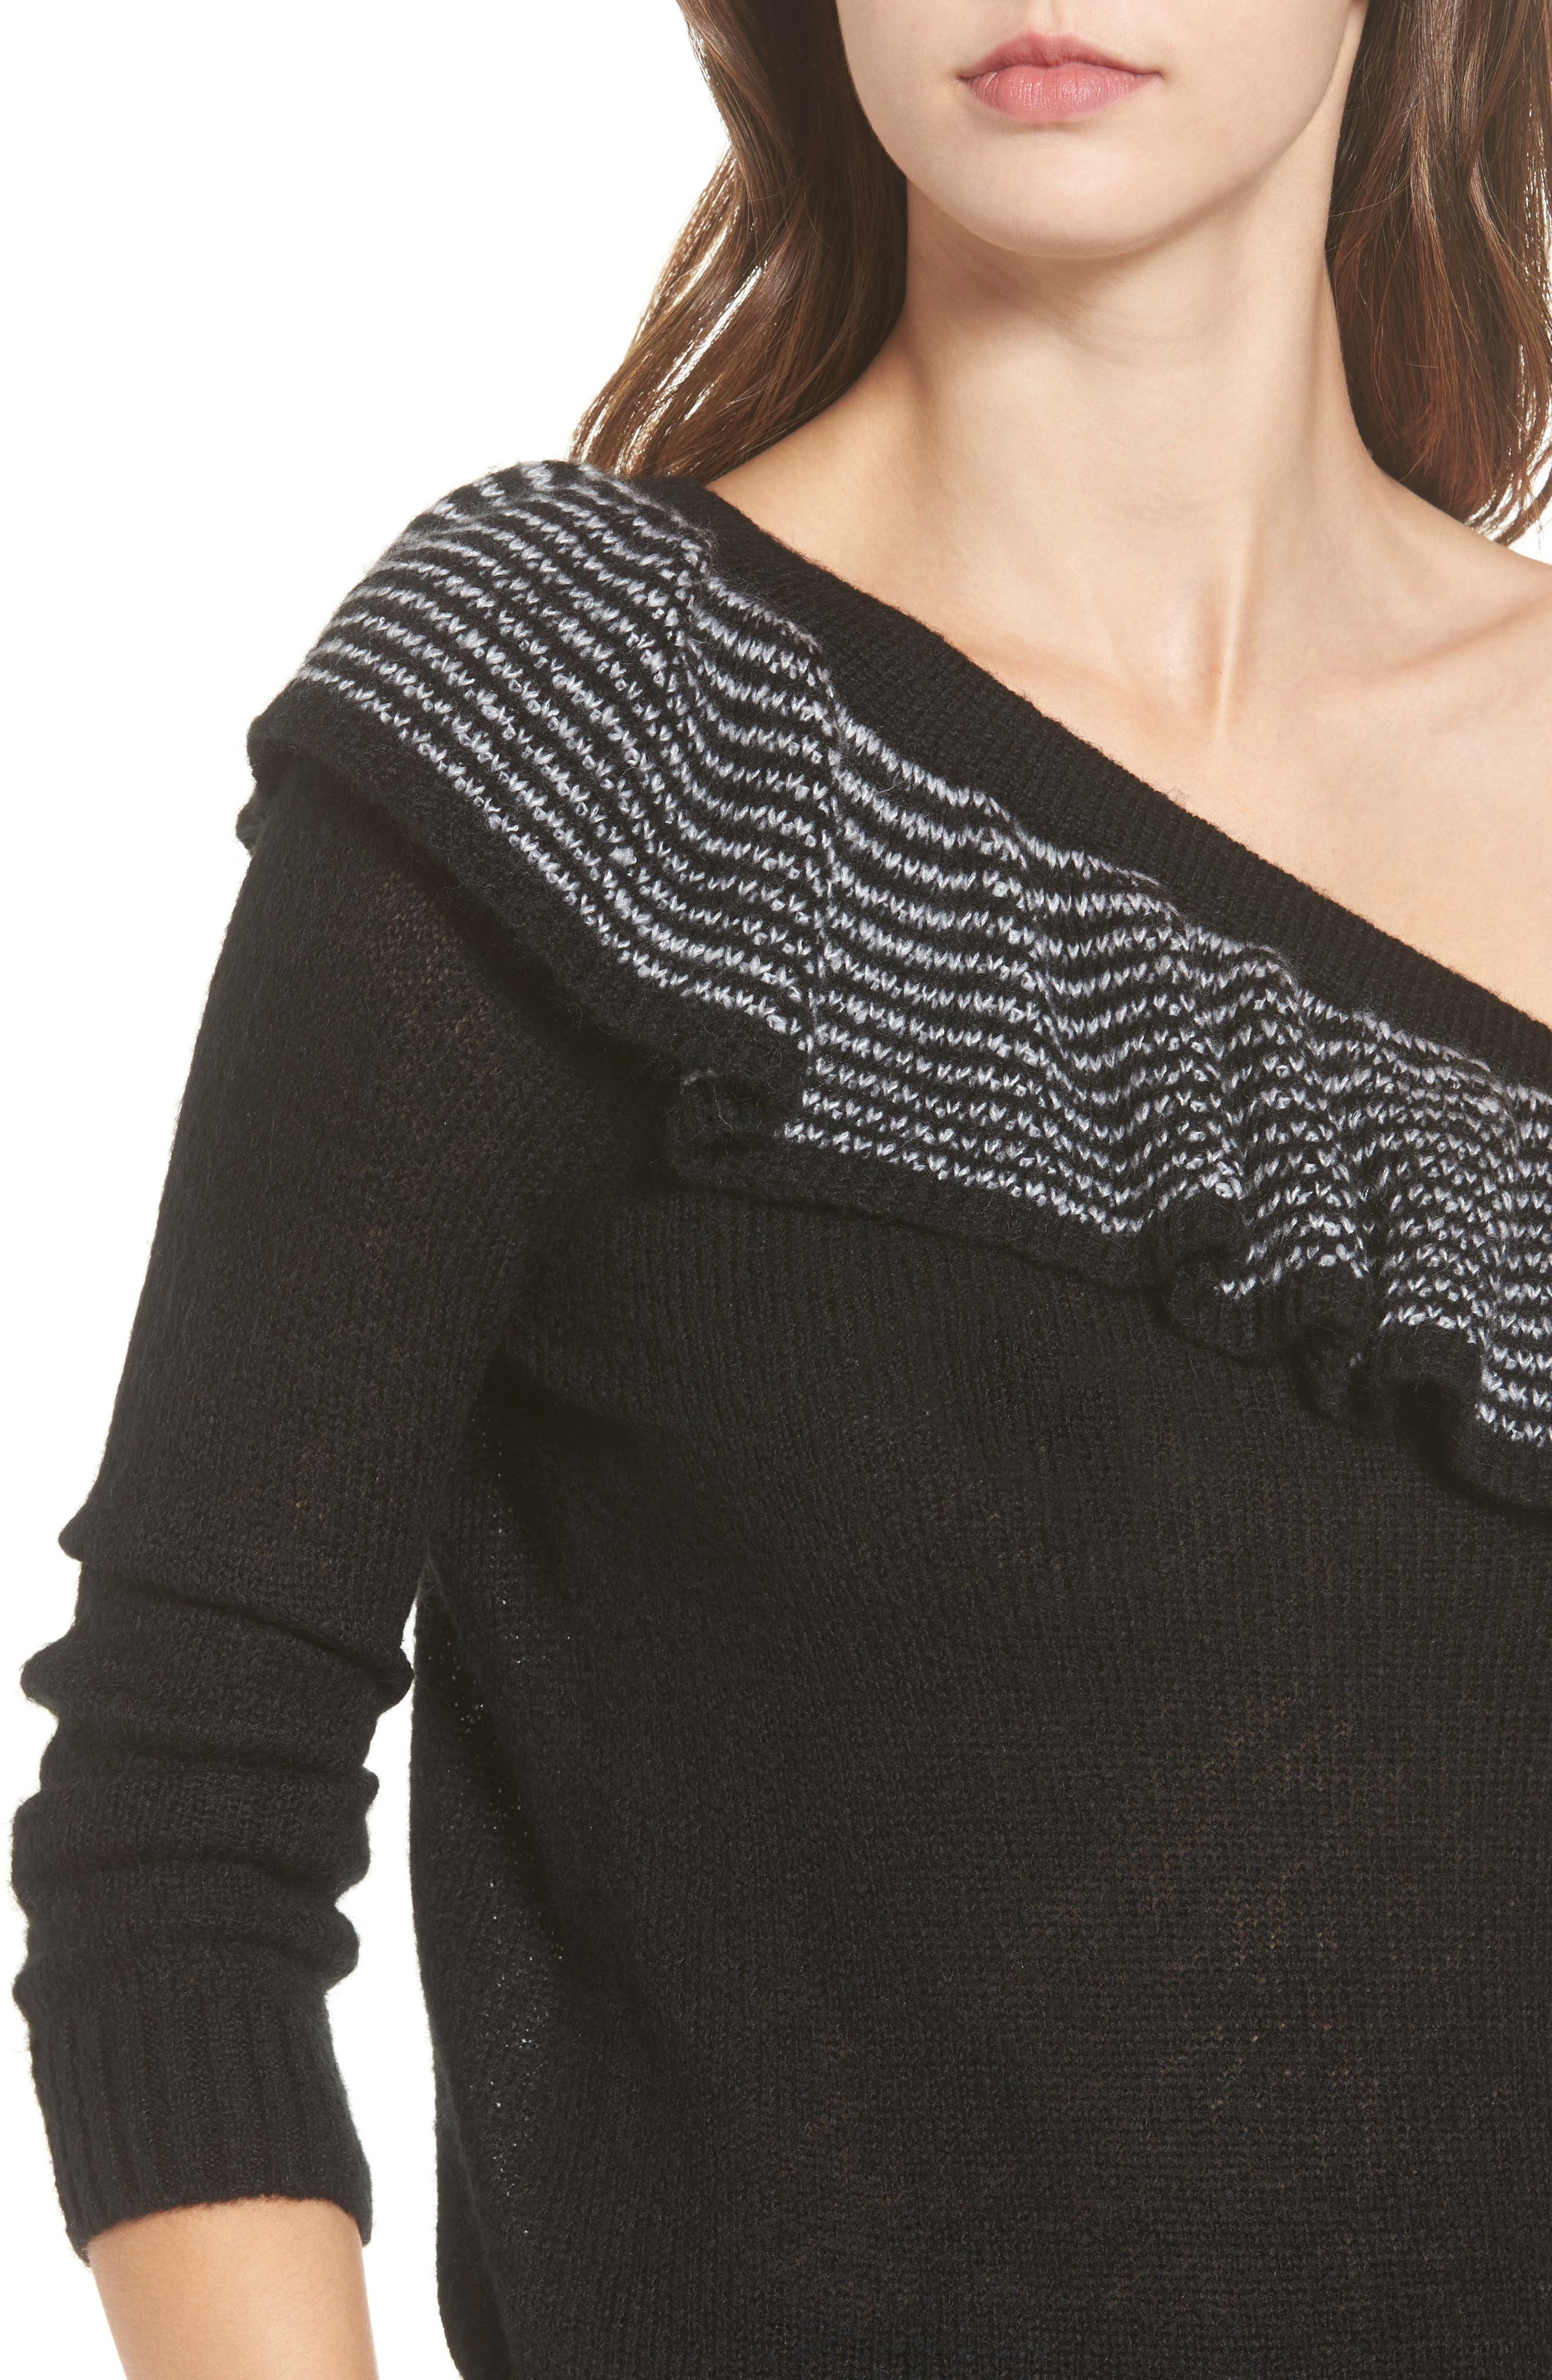 Ruffle One-Shoulder Sweater,                             Alternate thumbnail 4, color,                             001